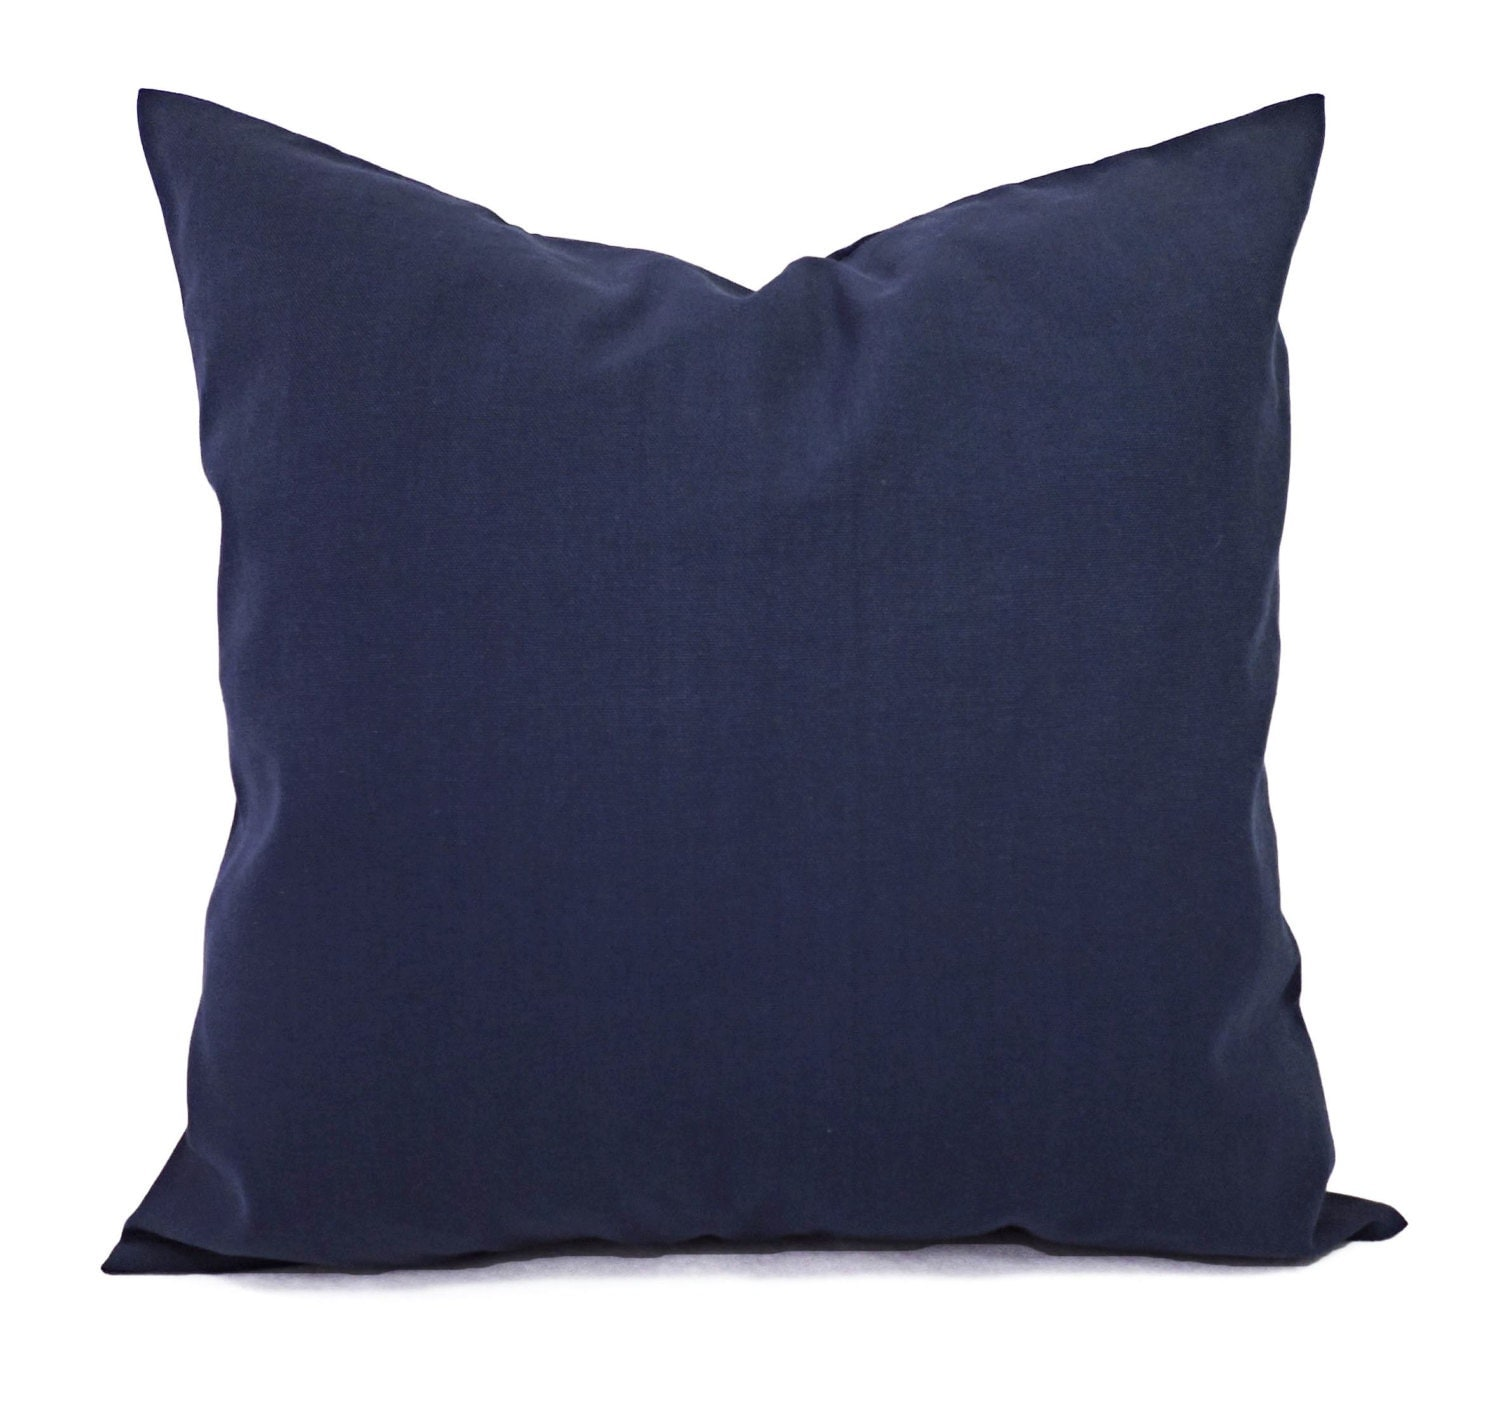 Throw Pillows With Covers : Two Solid Navy Throw Pillow Covers Navy Couch Pillow Covers